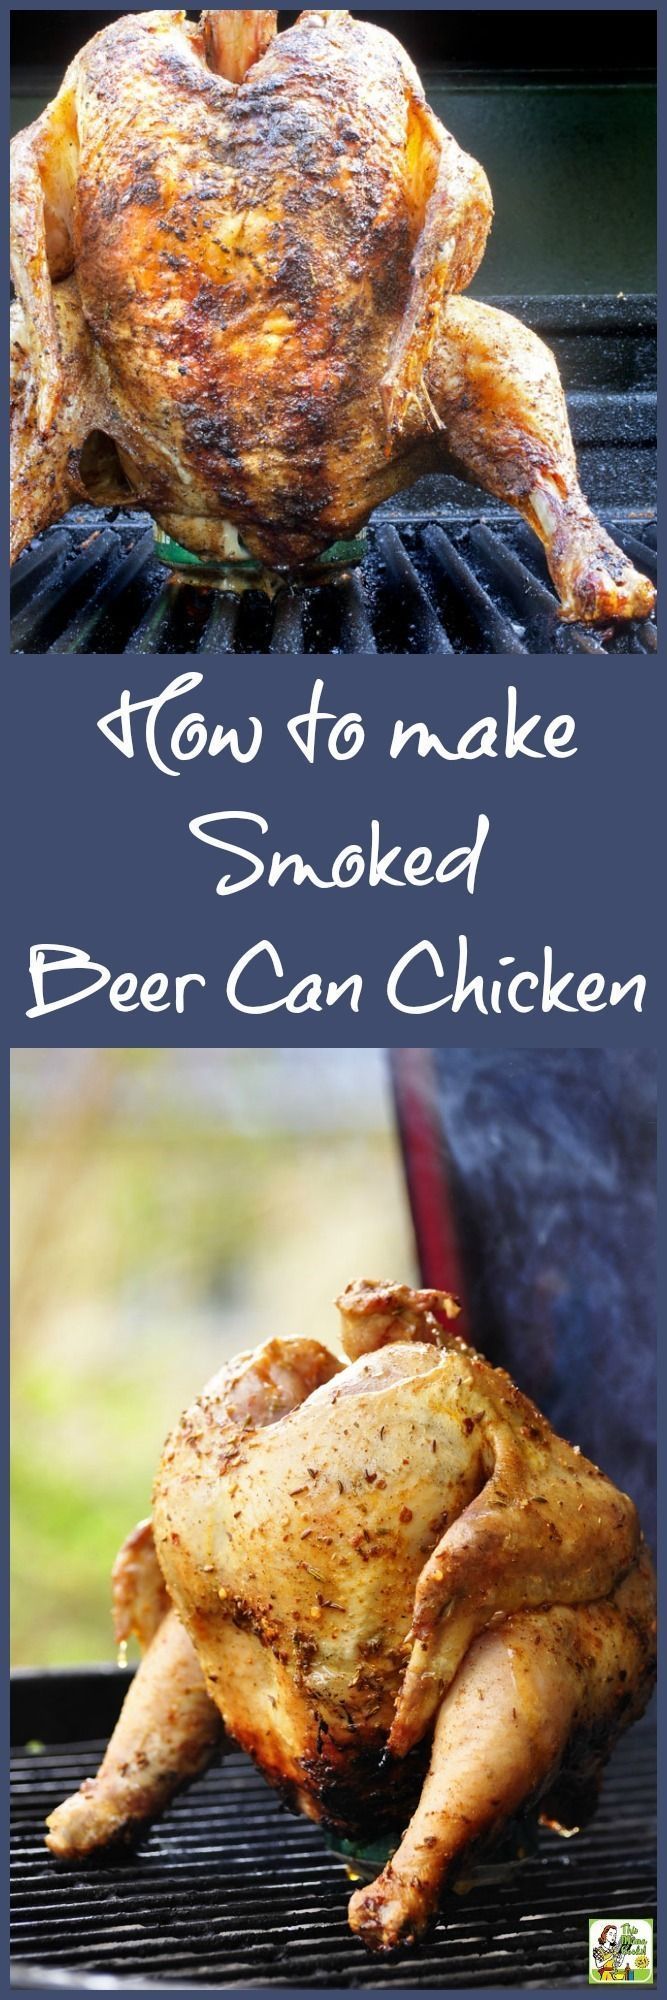 Making smoked beer can chicken is easier than you think if you use bottled marinade or salad dressing and a store bought barbeque rub. Cook the beer can chicken in an electric or gas smoker. Or you ca